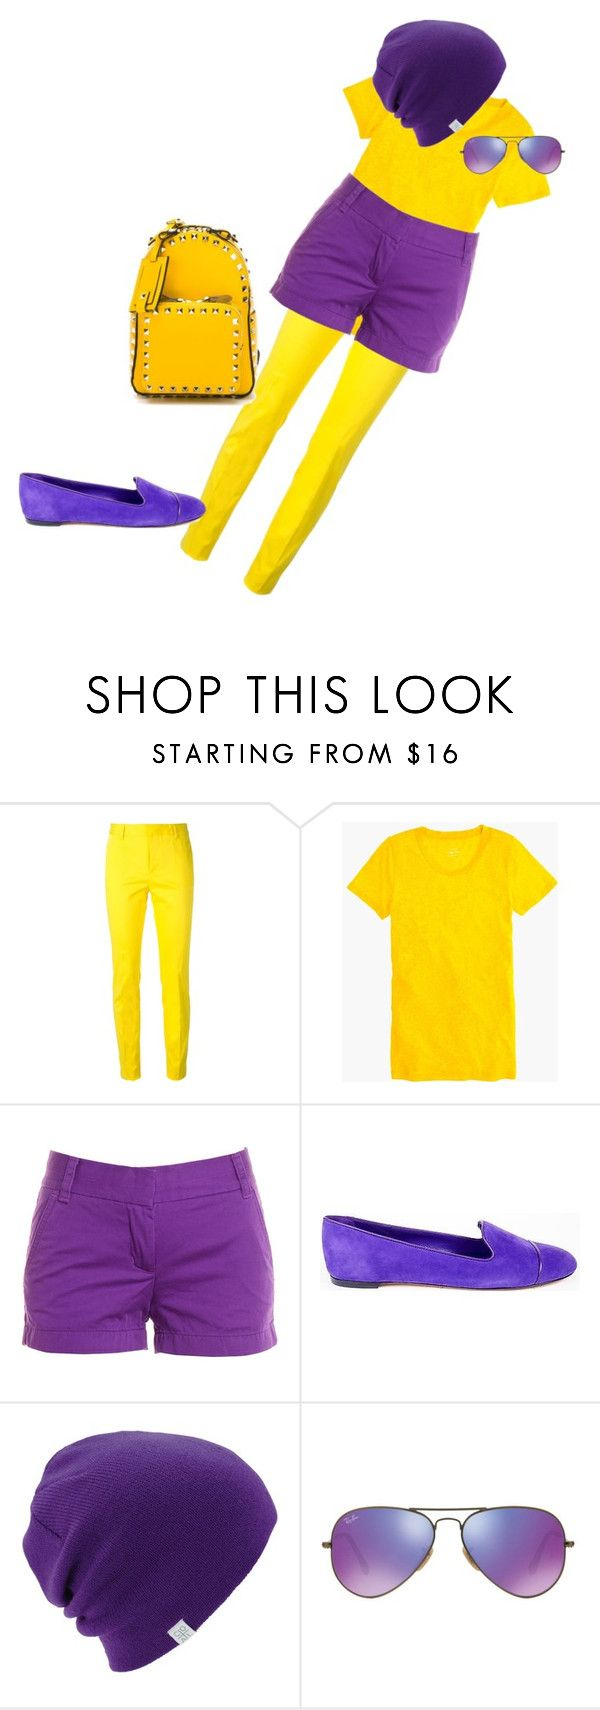 minion kit by alicejudo on Polyvore featuring mode, J.Crew, Dsquared2, Gianvito Rossi, Valentino, Ray-Ban and Coal